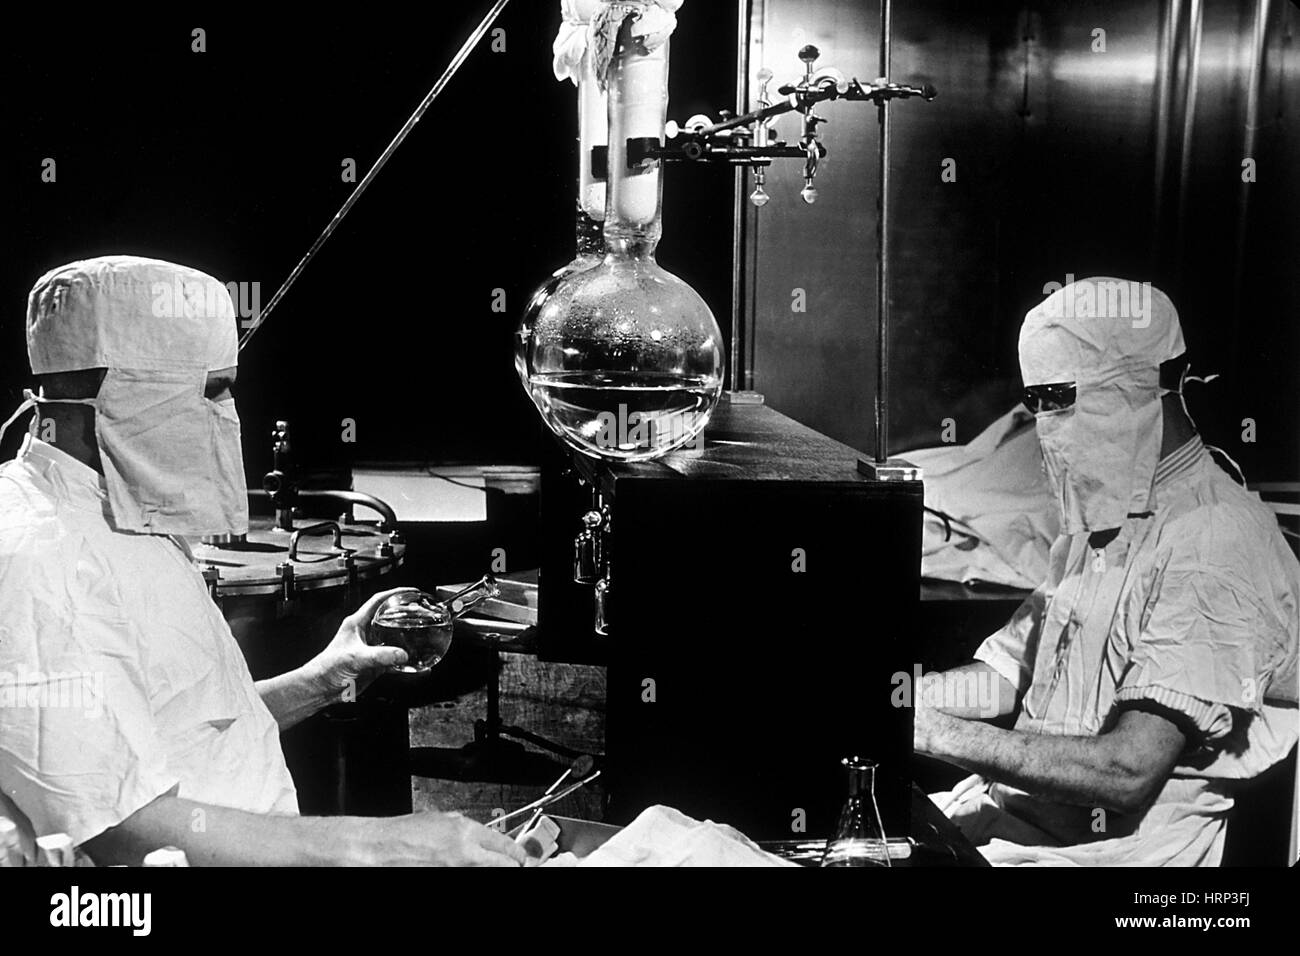 Cancer Research, Genetics Laboratory, 1950 - Stock Image